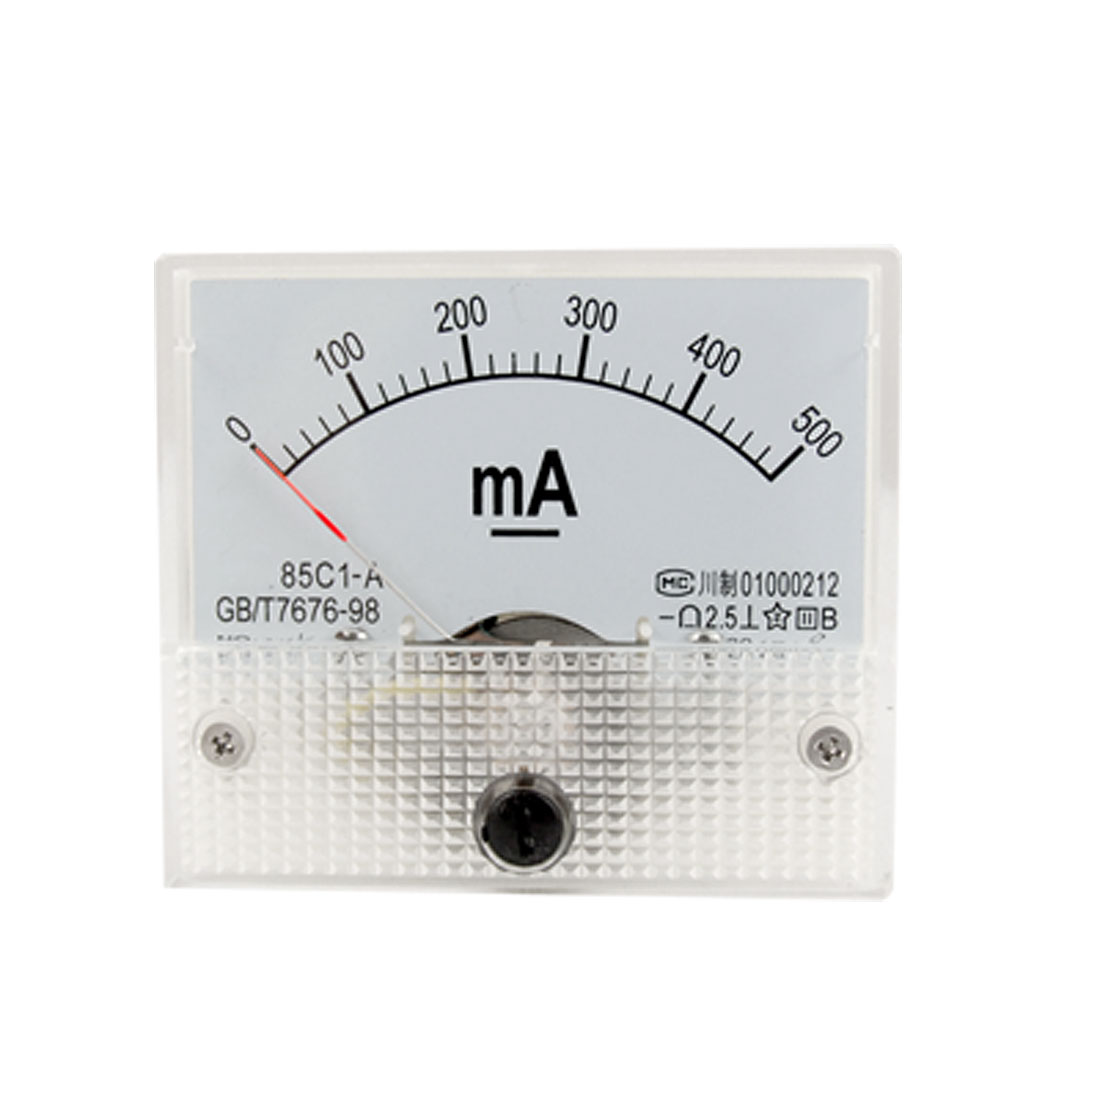 85C1-A DC 0-500mA Analog Panel Meter Ammeter Gauge New 20mA Tick Mark